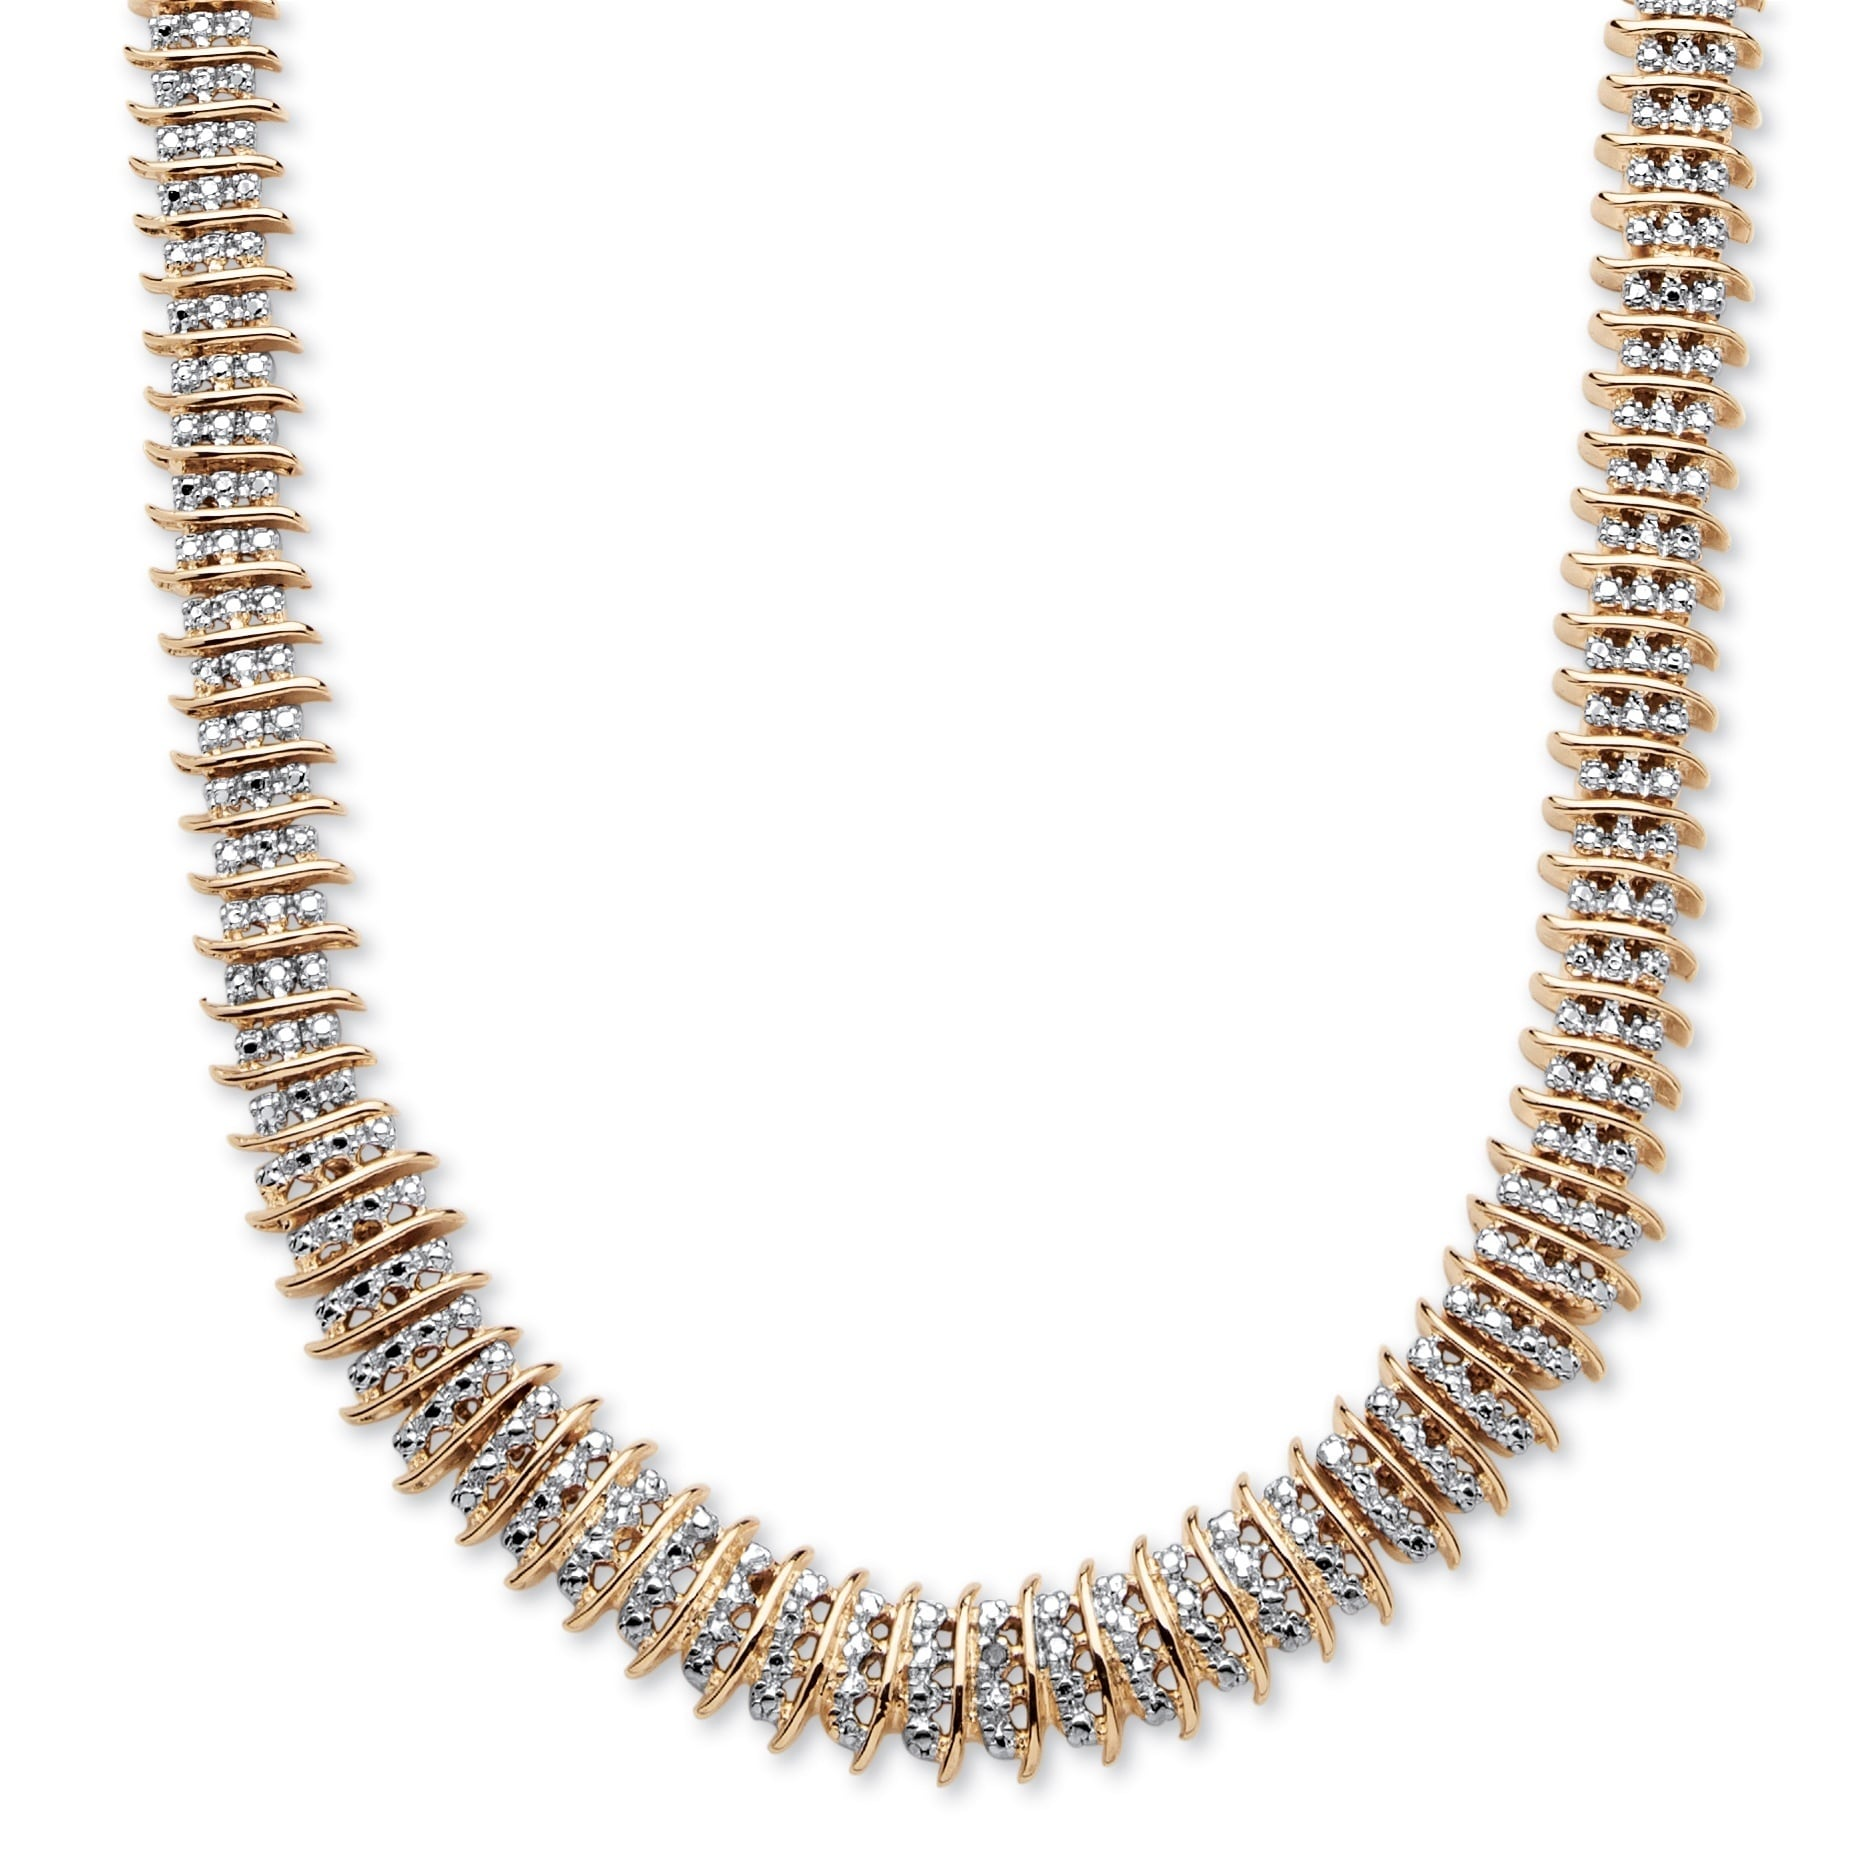 Yellow Gold Plated Round Genuine Diamond Tennis Necklace 1 5 Cttw Ij Color I2 I3 Clarity Overstock 11421826